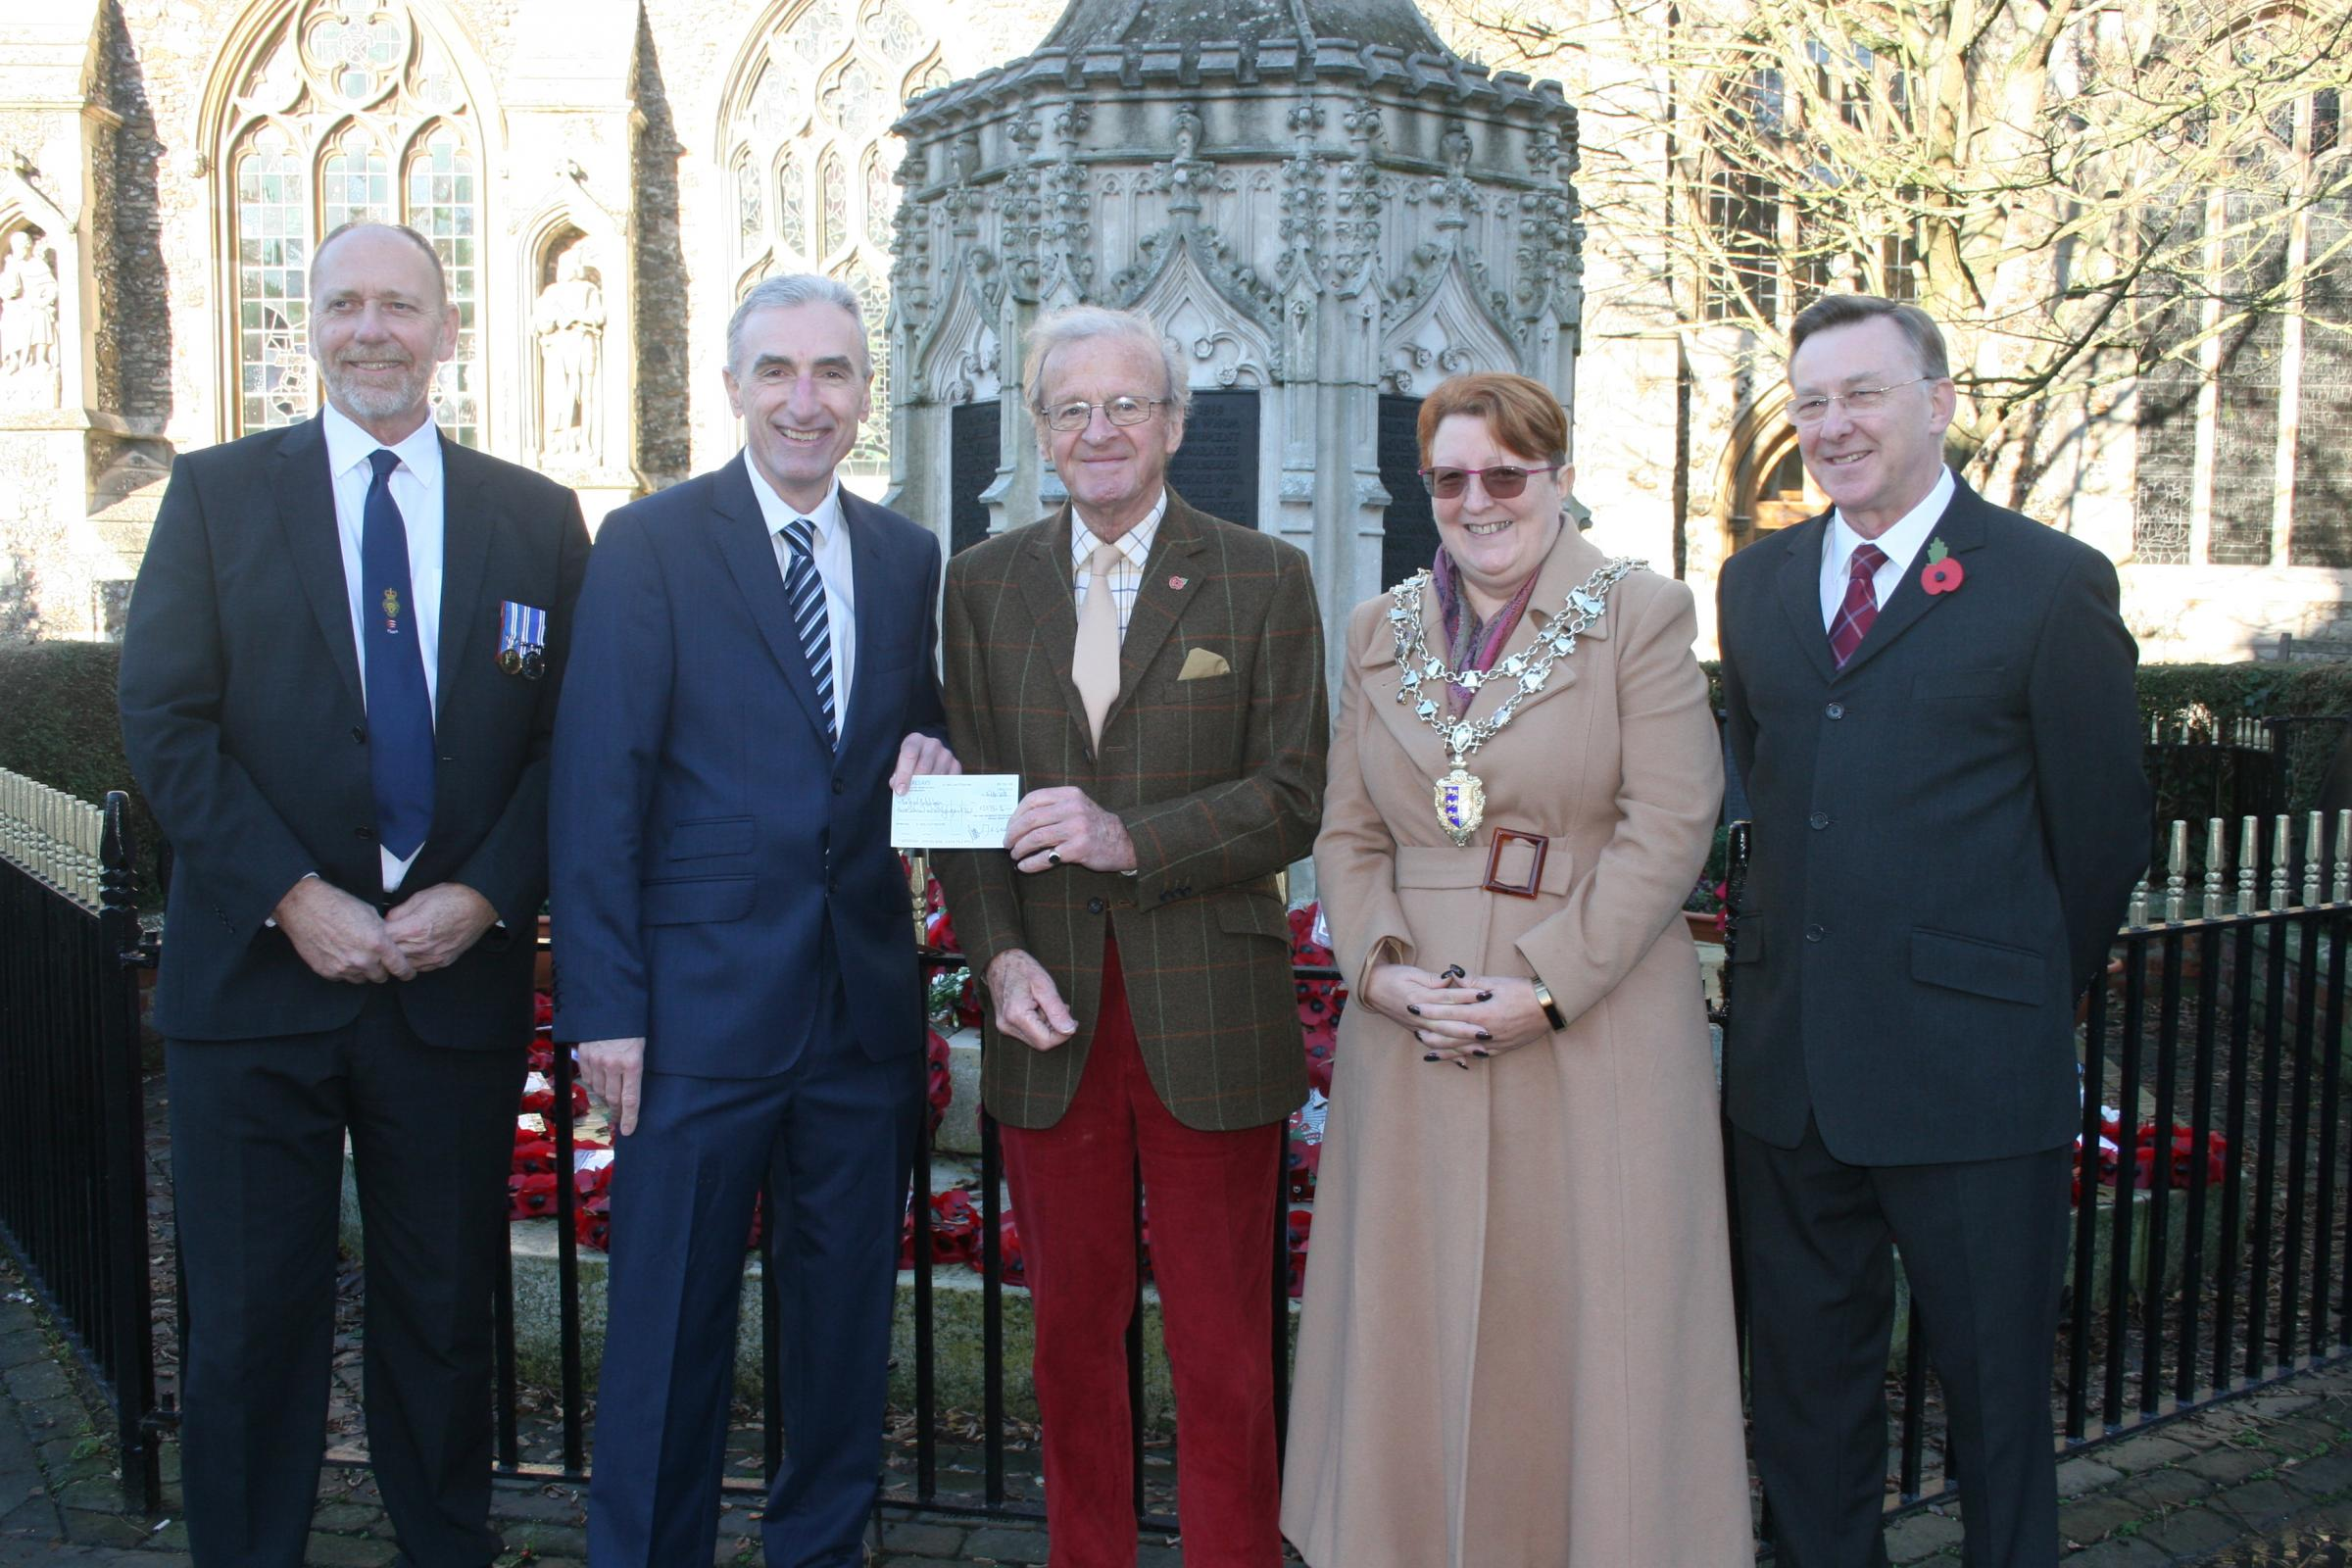 CHEQUE MATES: Councillor Mark Heard, writer and director Neil Fisher, Poppy co-ordinator Sholto Morton, Mayor Jeanette Stilts and orchestra director Ron Bewers